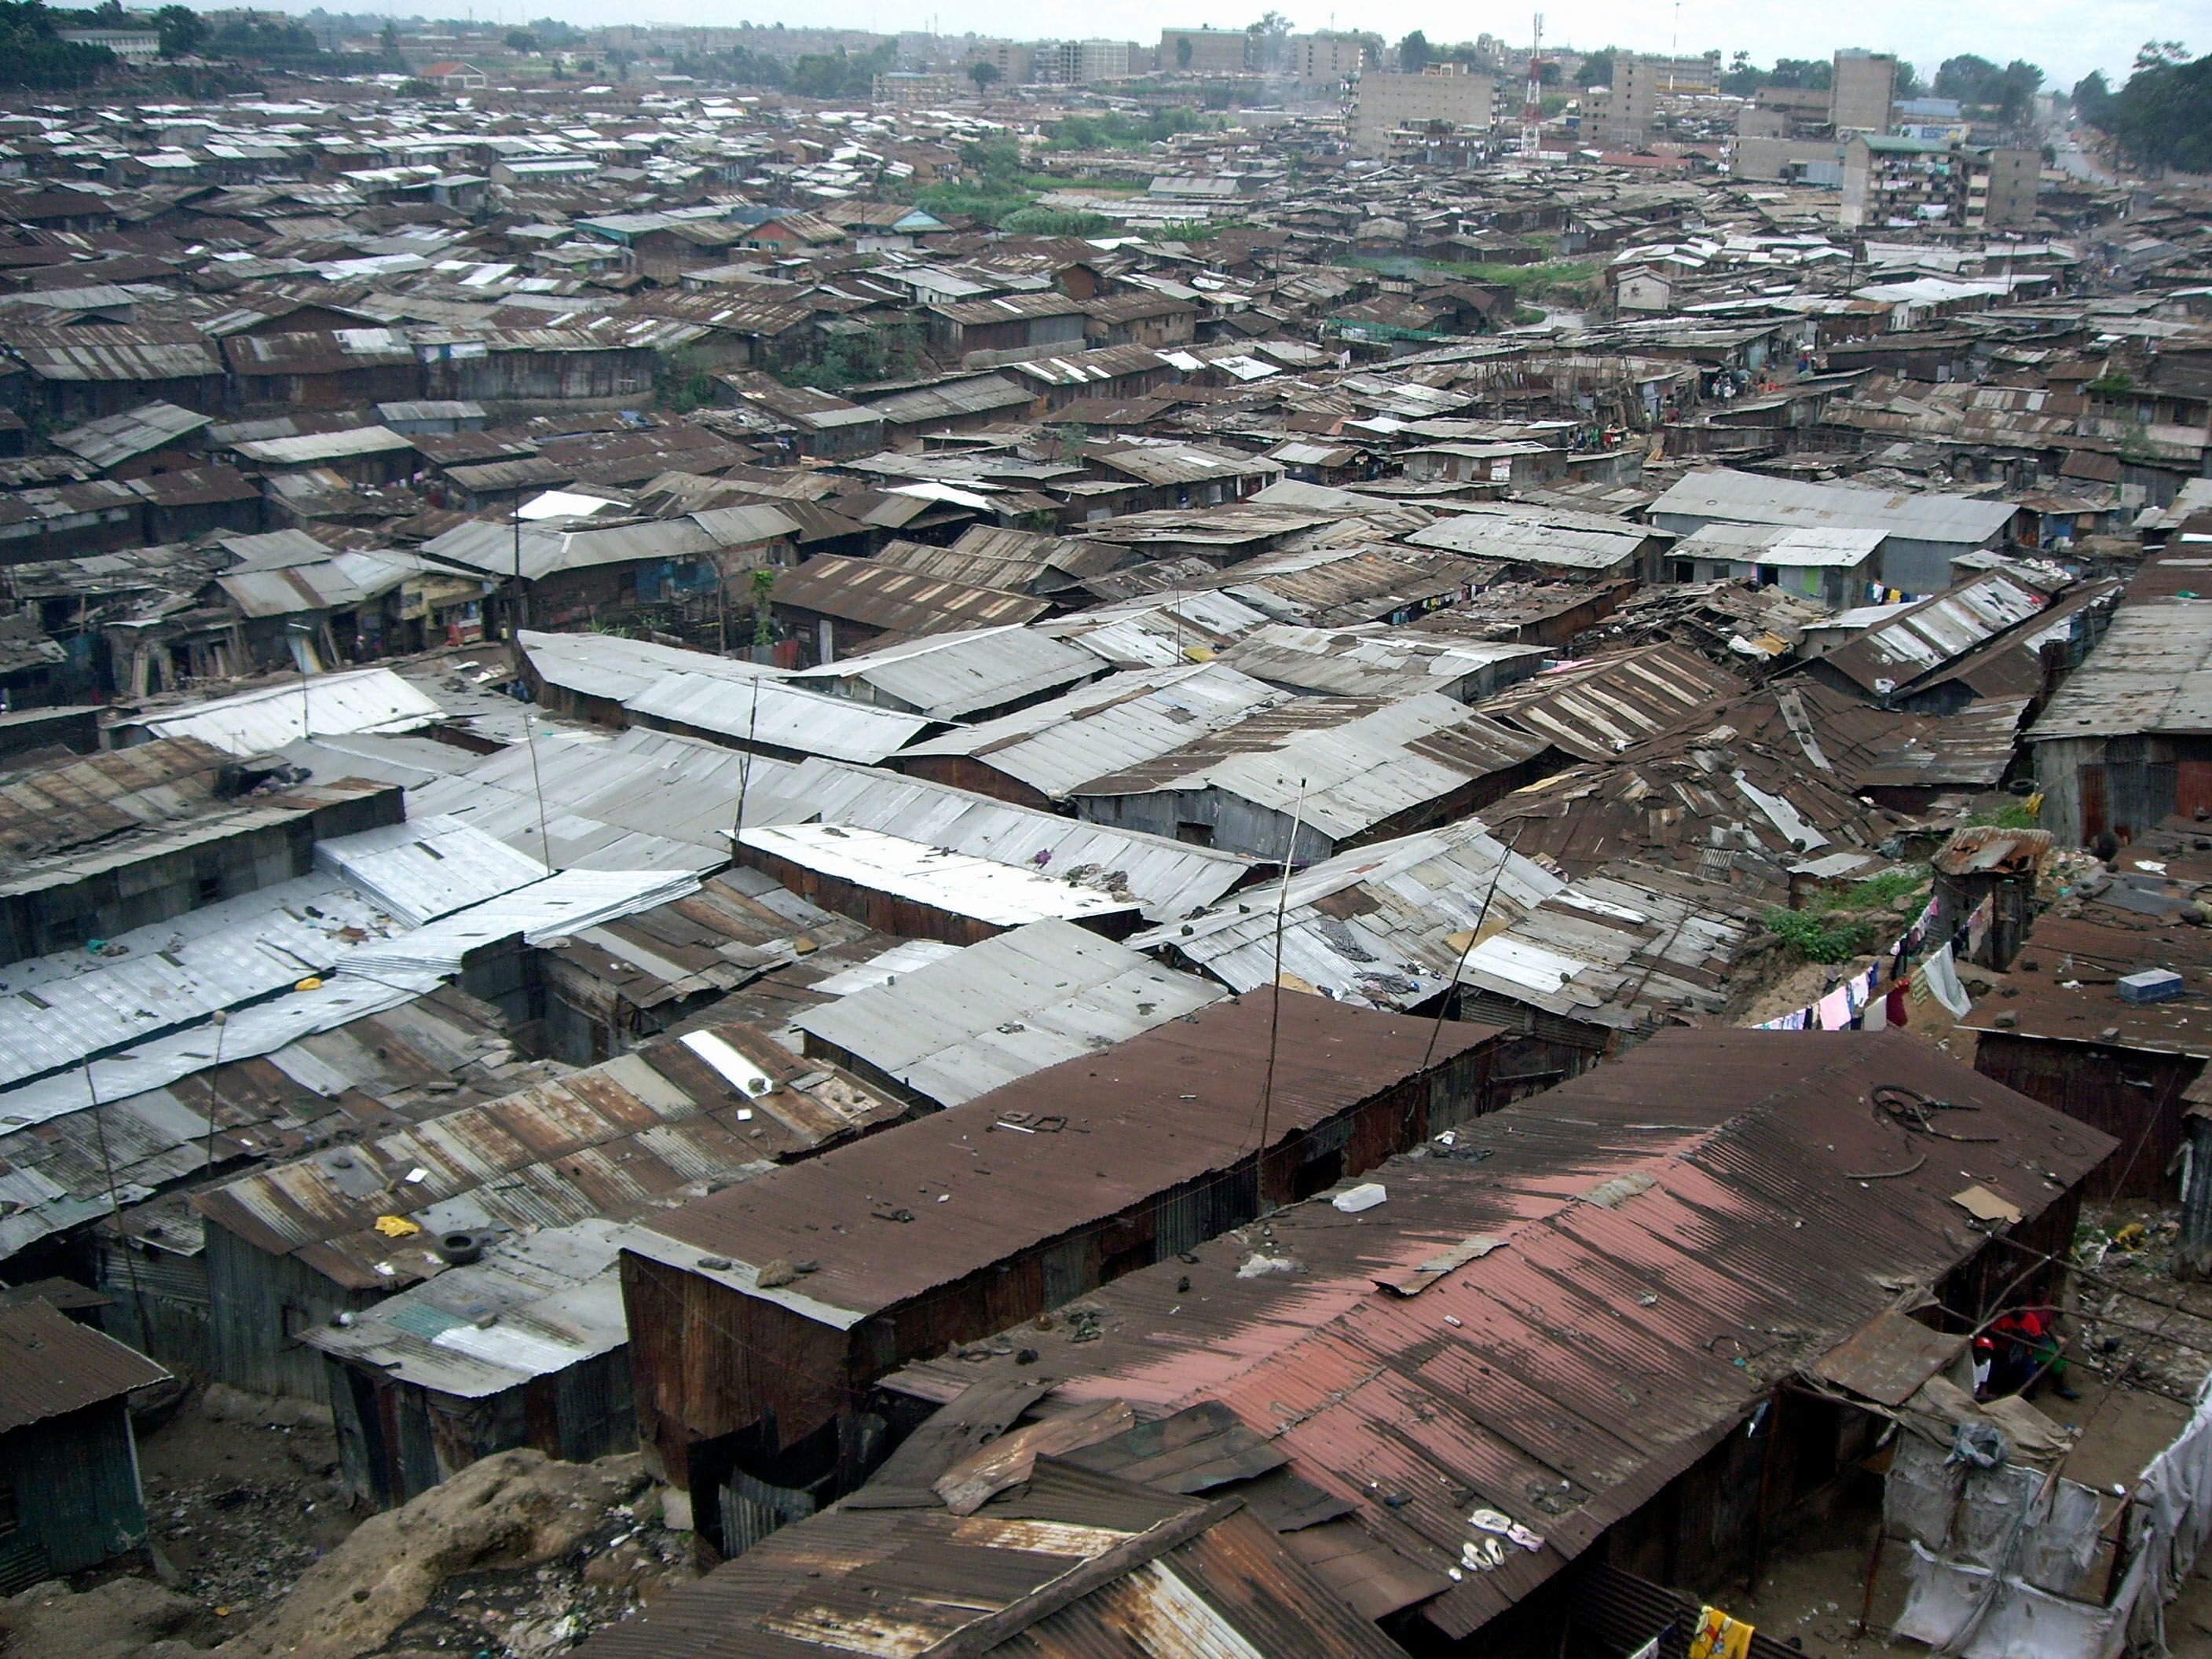 Mathare Valley slum in Nairobi, Kenya. Mathare is one of the biggest slums in Africa. 20 July 2007.